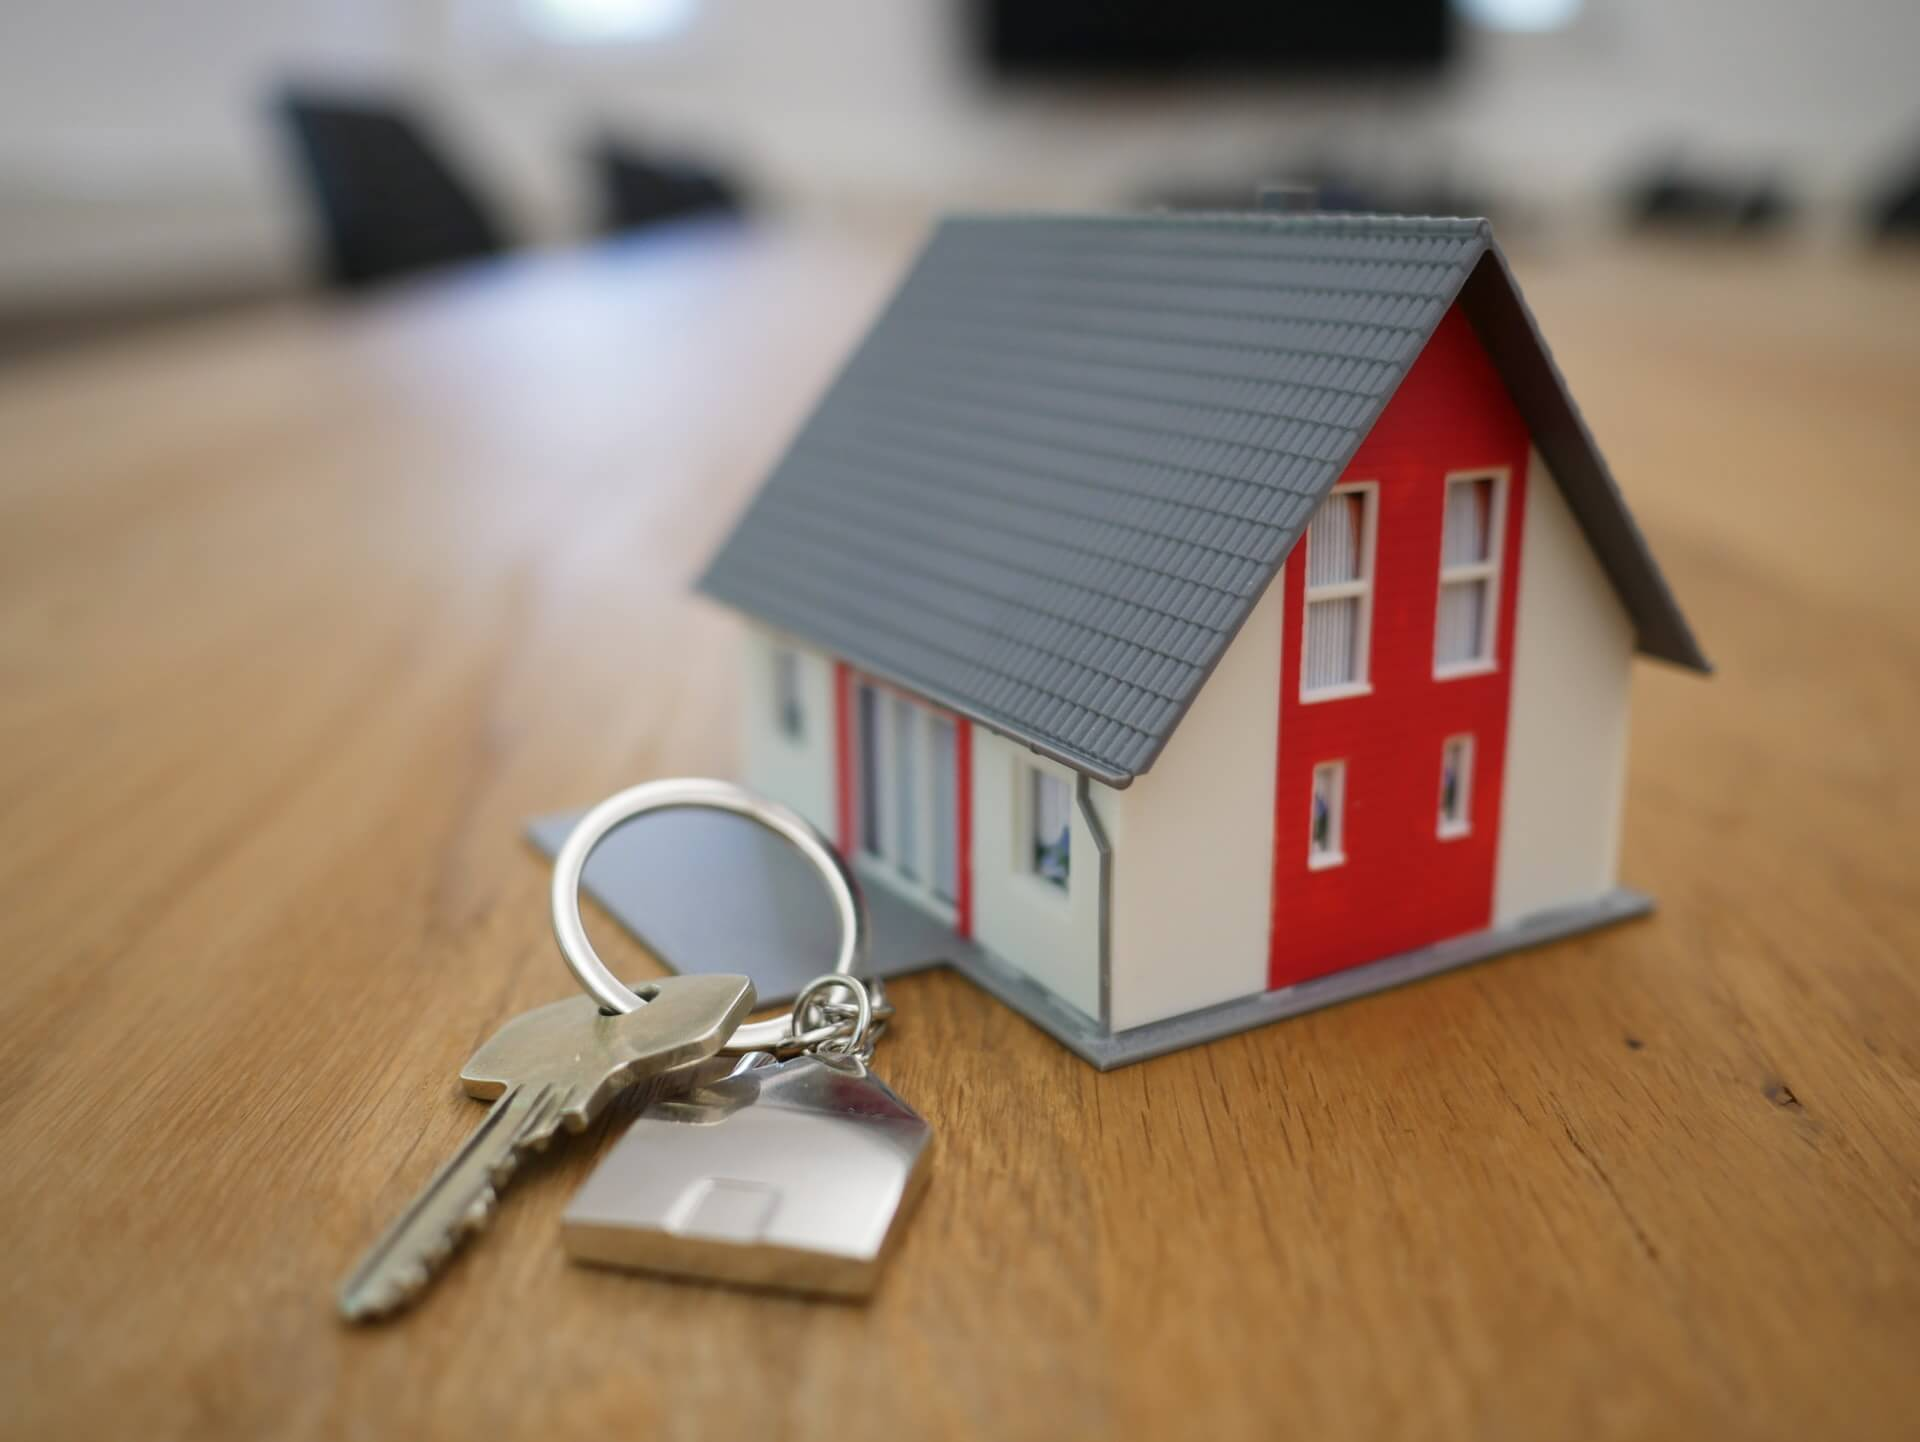 tiny home and keys